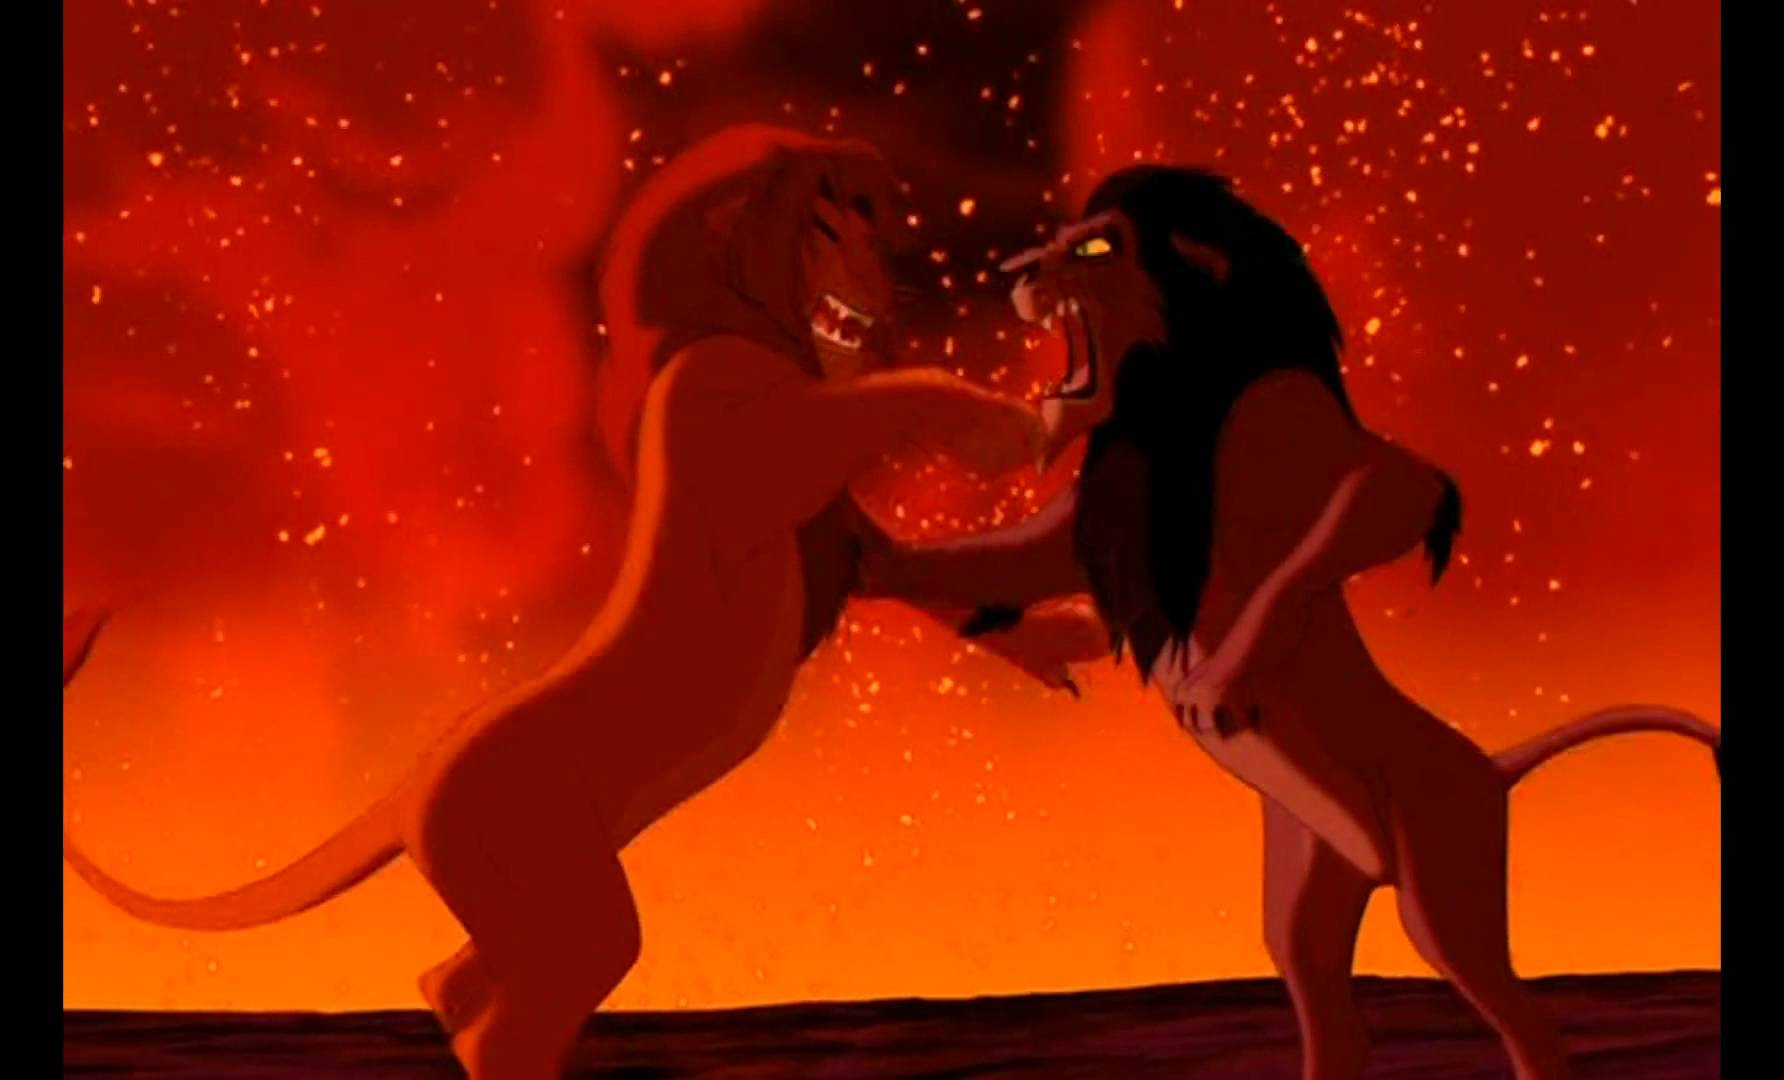 This Is The Fight Scene In The Movie Lion King By Far - Lion King Simba Vs Scar , HD Wallpaper & Backgrounds